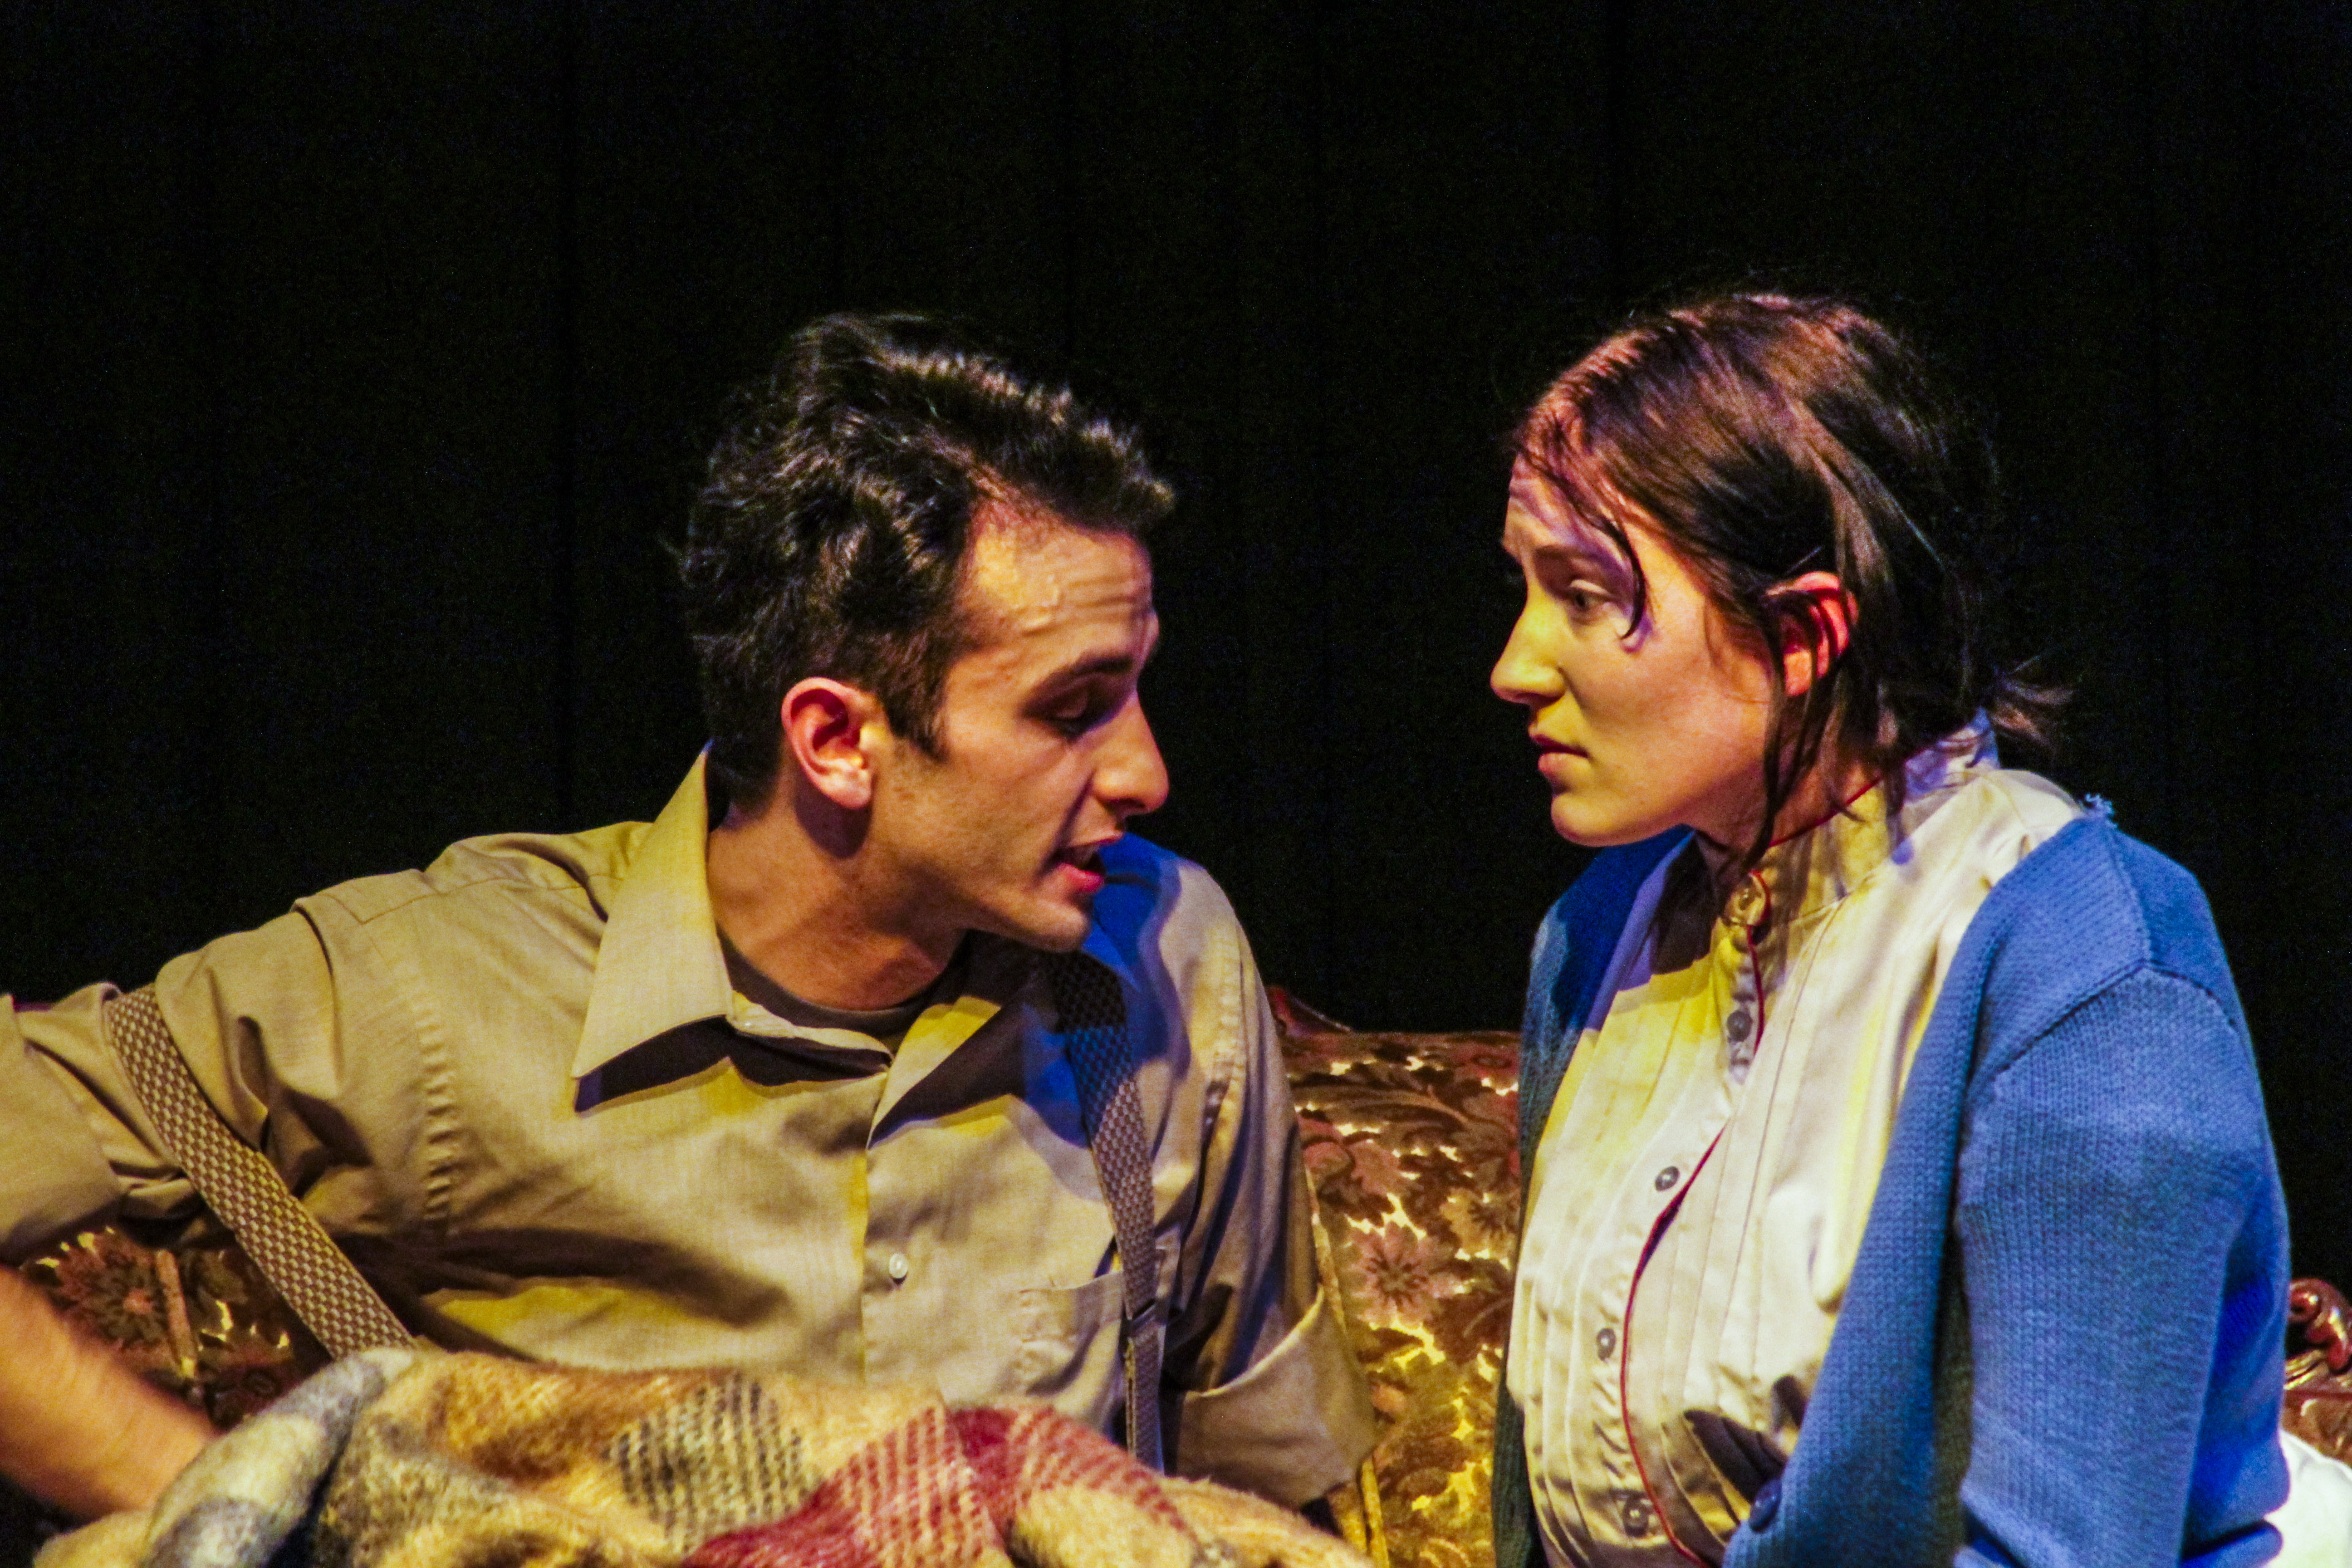 Tom (right, performed by Sean LaRocca) tries to explain his frustrations to his sister Laura (right, performed by Abby Fields) during the dress rehearsal of The Glass Menagerie by Tennessee Williams, being performed at Palomar College. Lucas Spenser/Telescope.